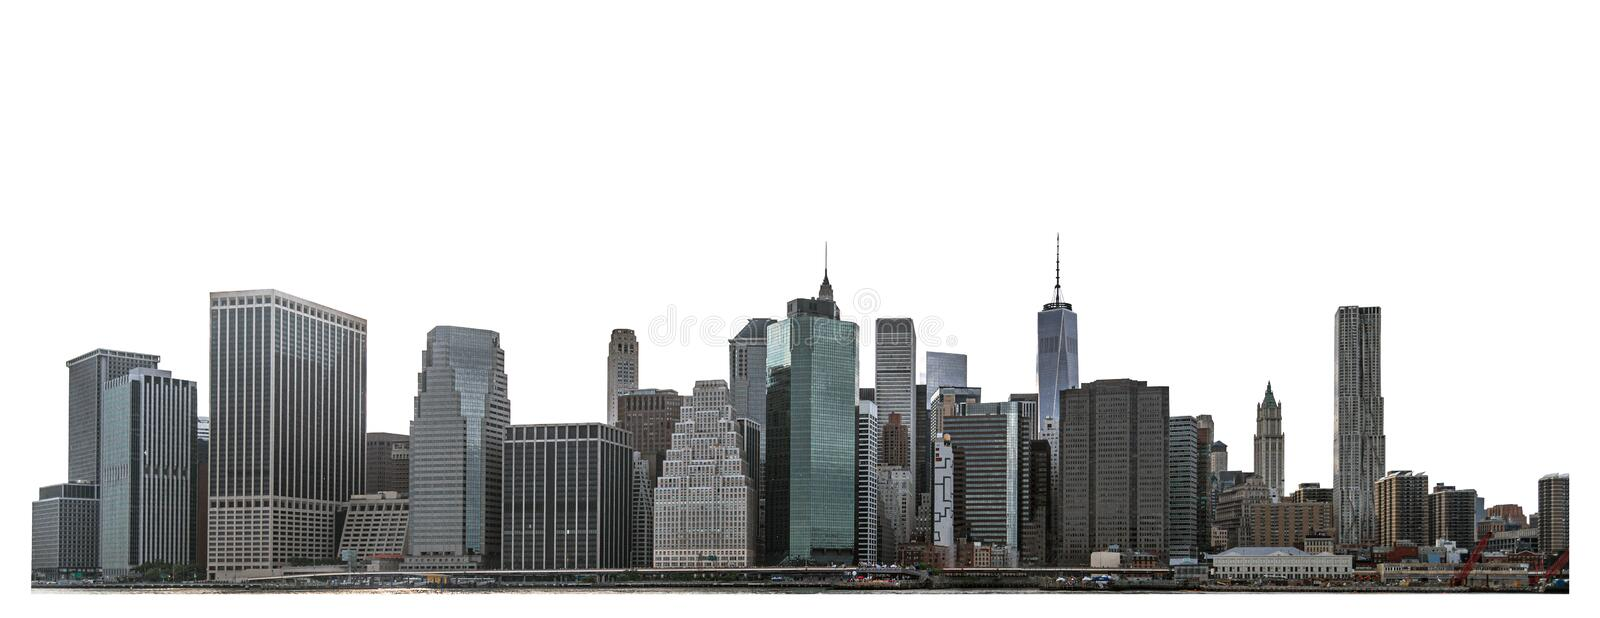 One World Trade Center and skyscraper, high-rise building in Lower Manhattan, New York City. Isolated white background with clipping path stock image